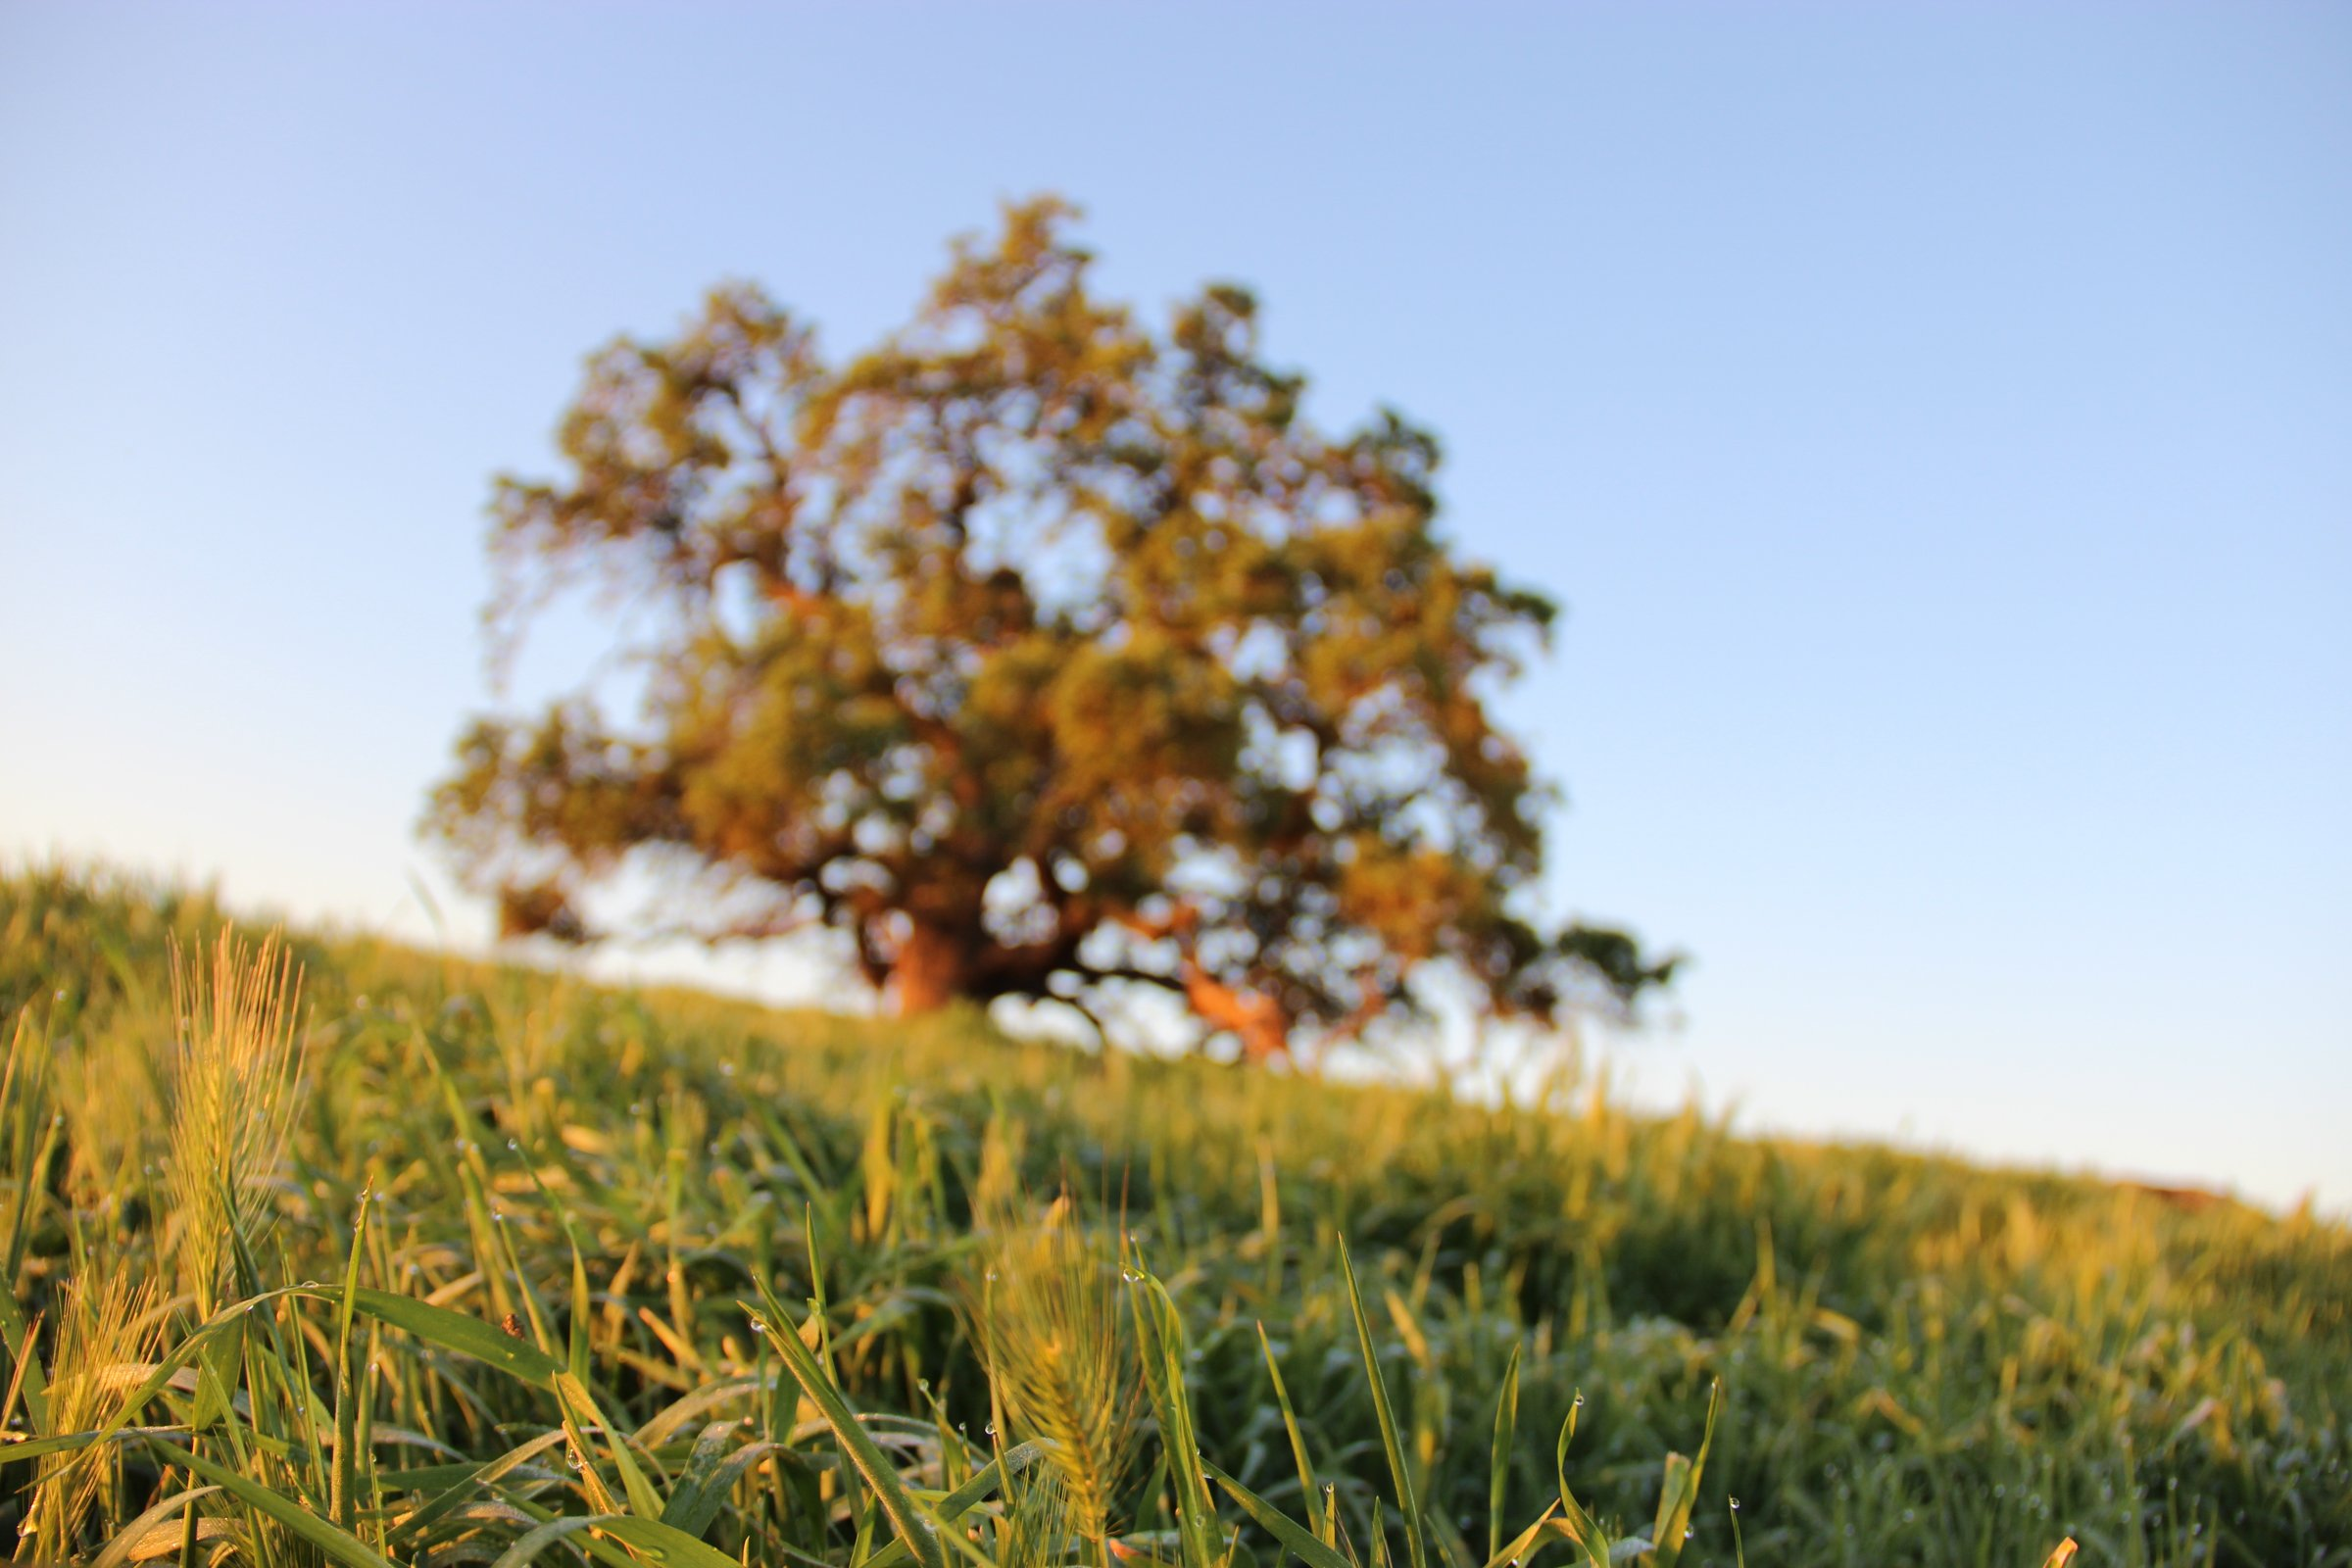 Grassy Hill with Large Tree